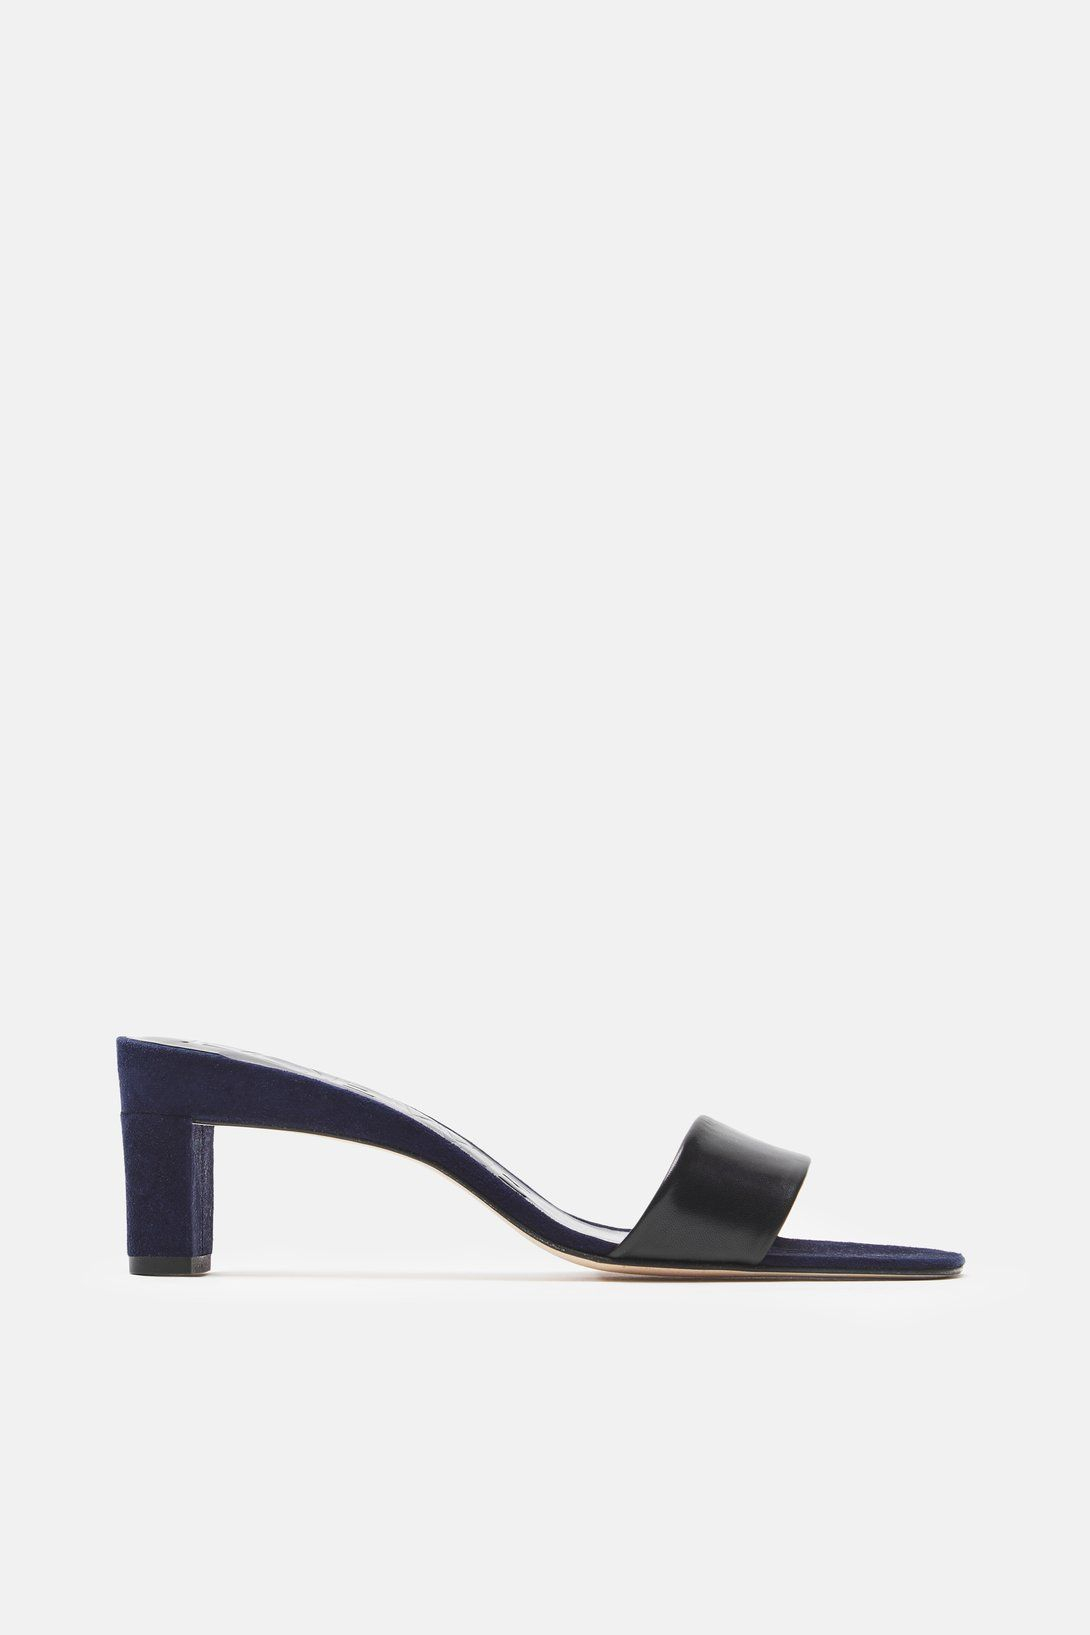 6a1b83b372 Low Mule Slide - Black/Navy   ON THE LINE   Fashion Shoes, Navy, Shoes